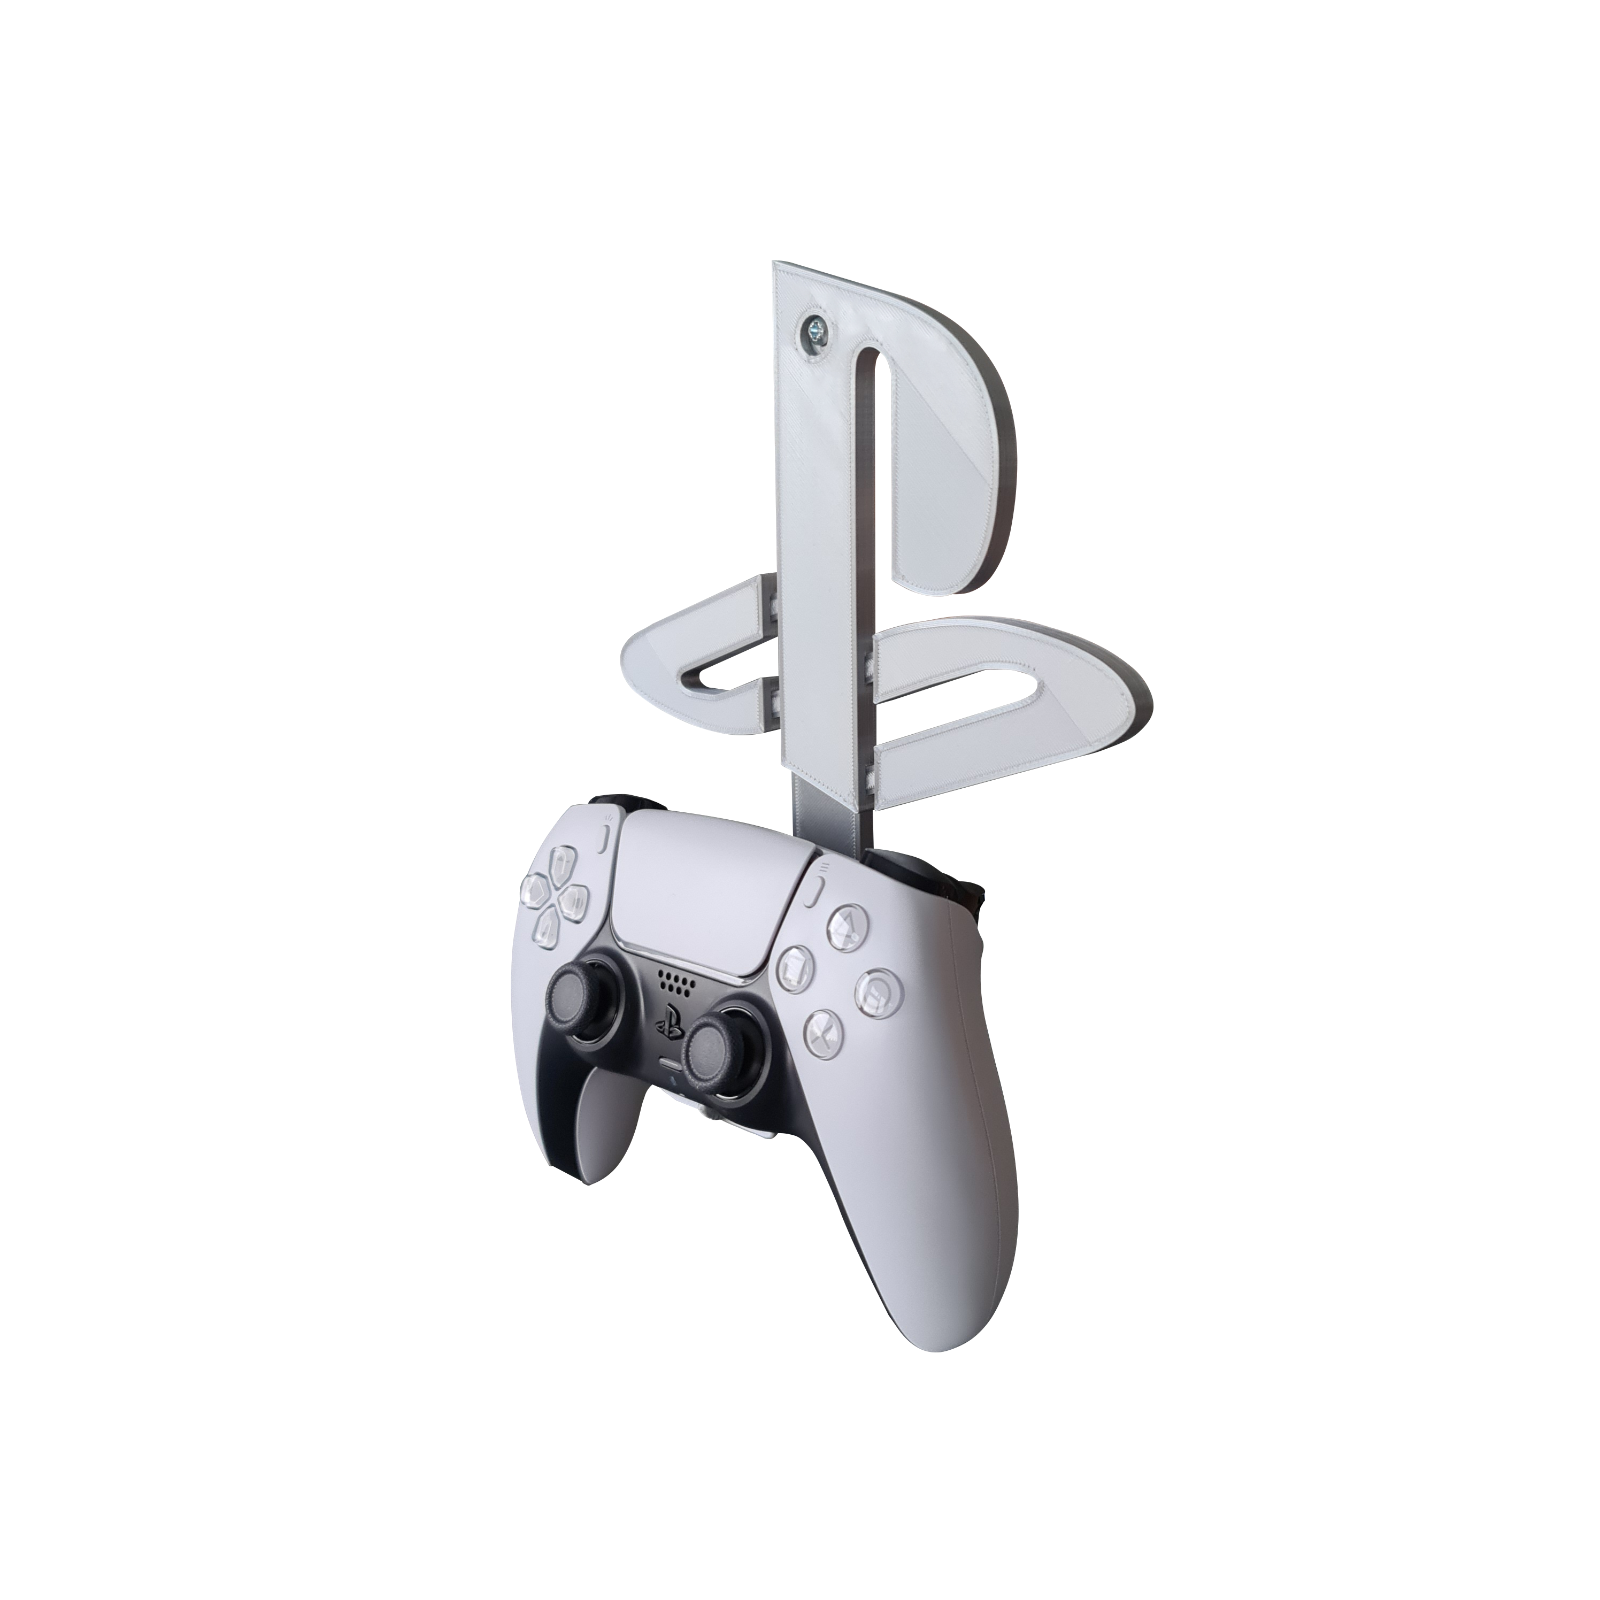 Wall Mount / Holder For PS5 Playstation 5 Controller Gamepad